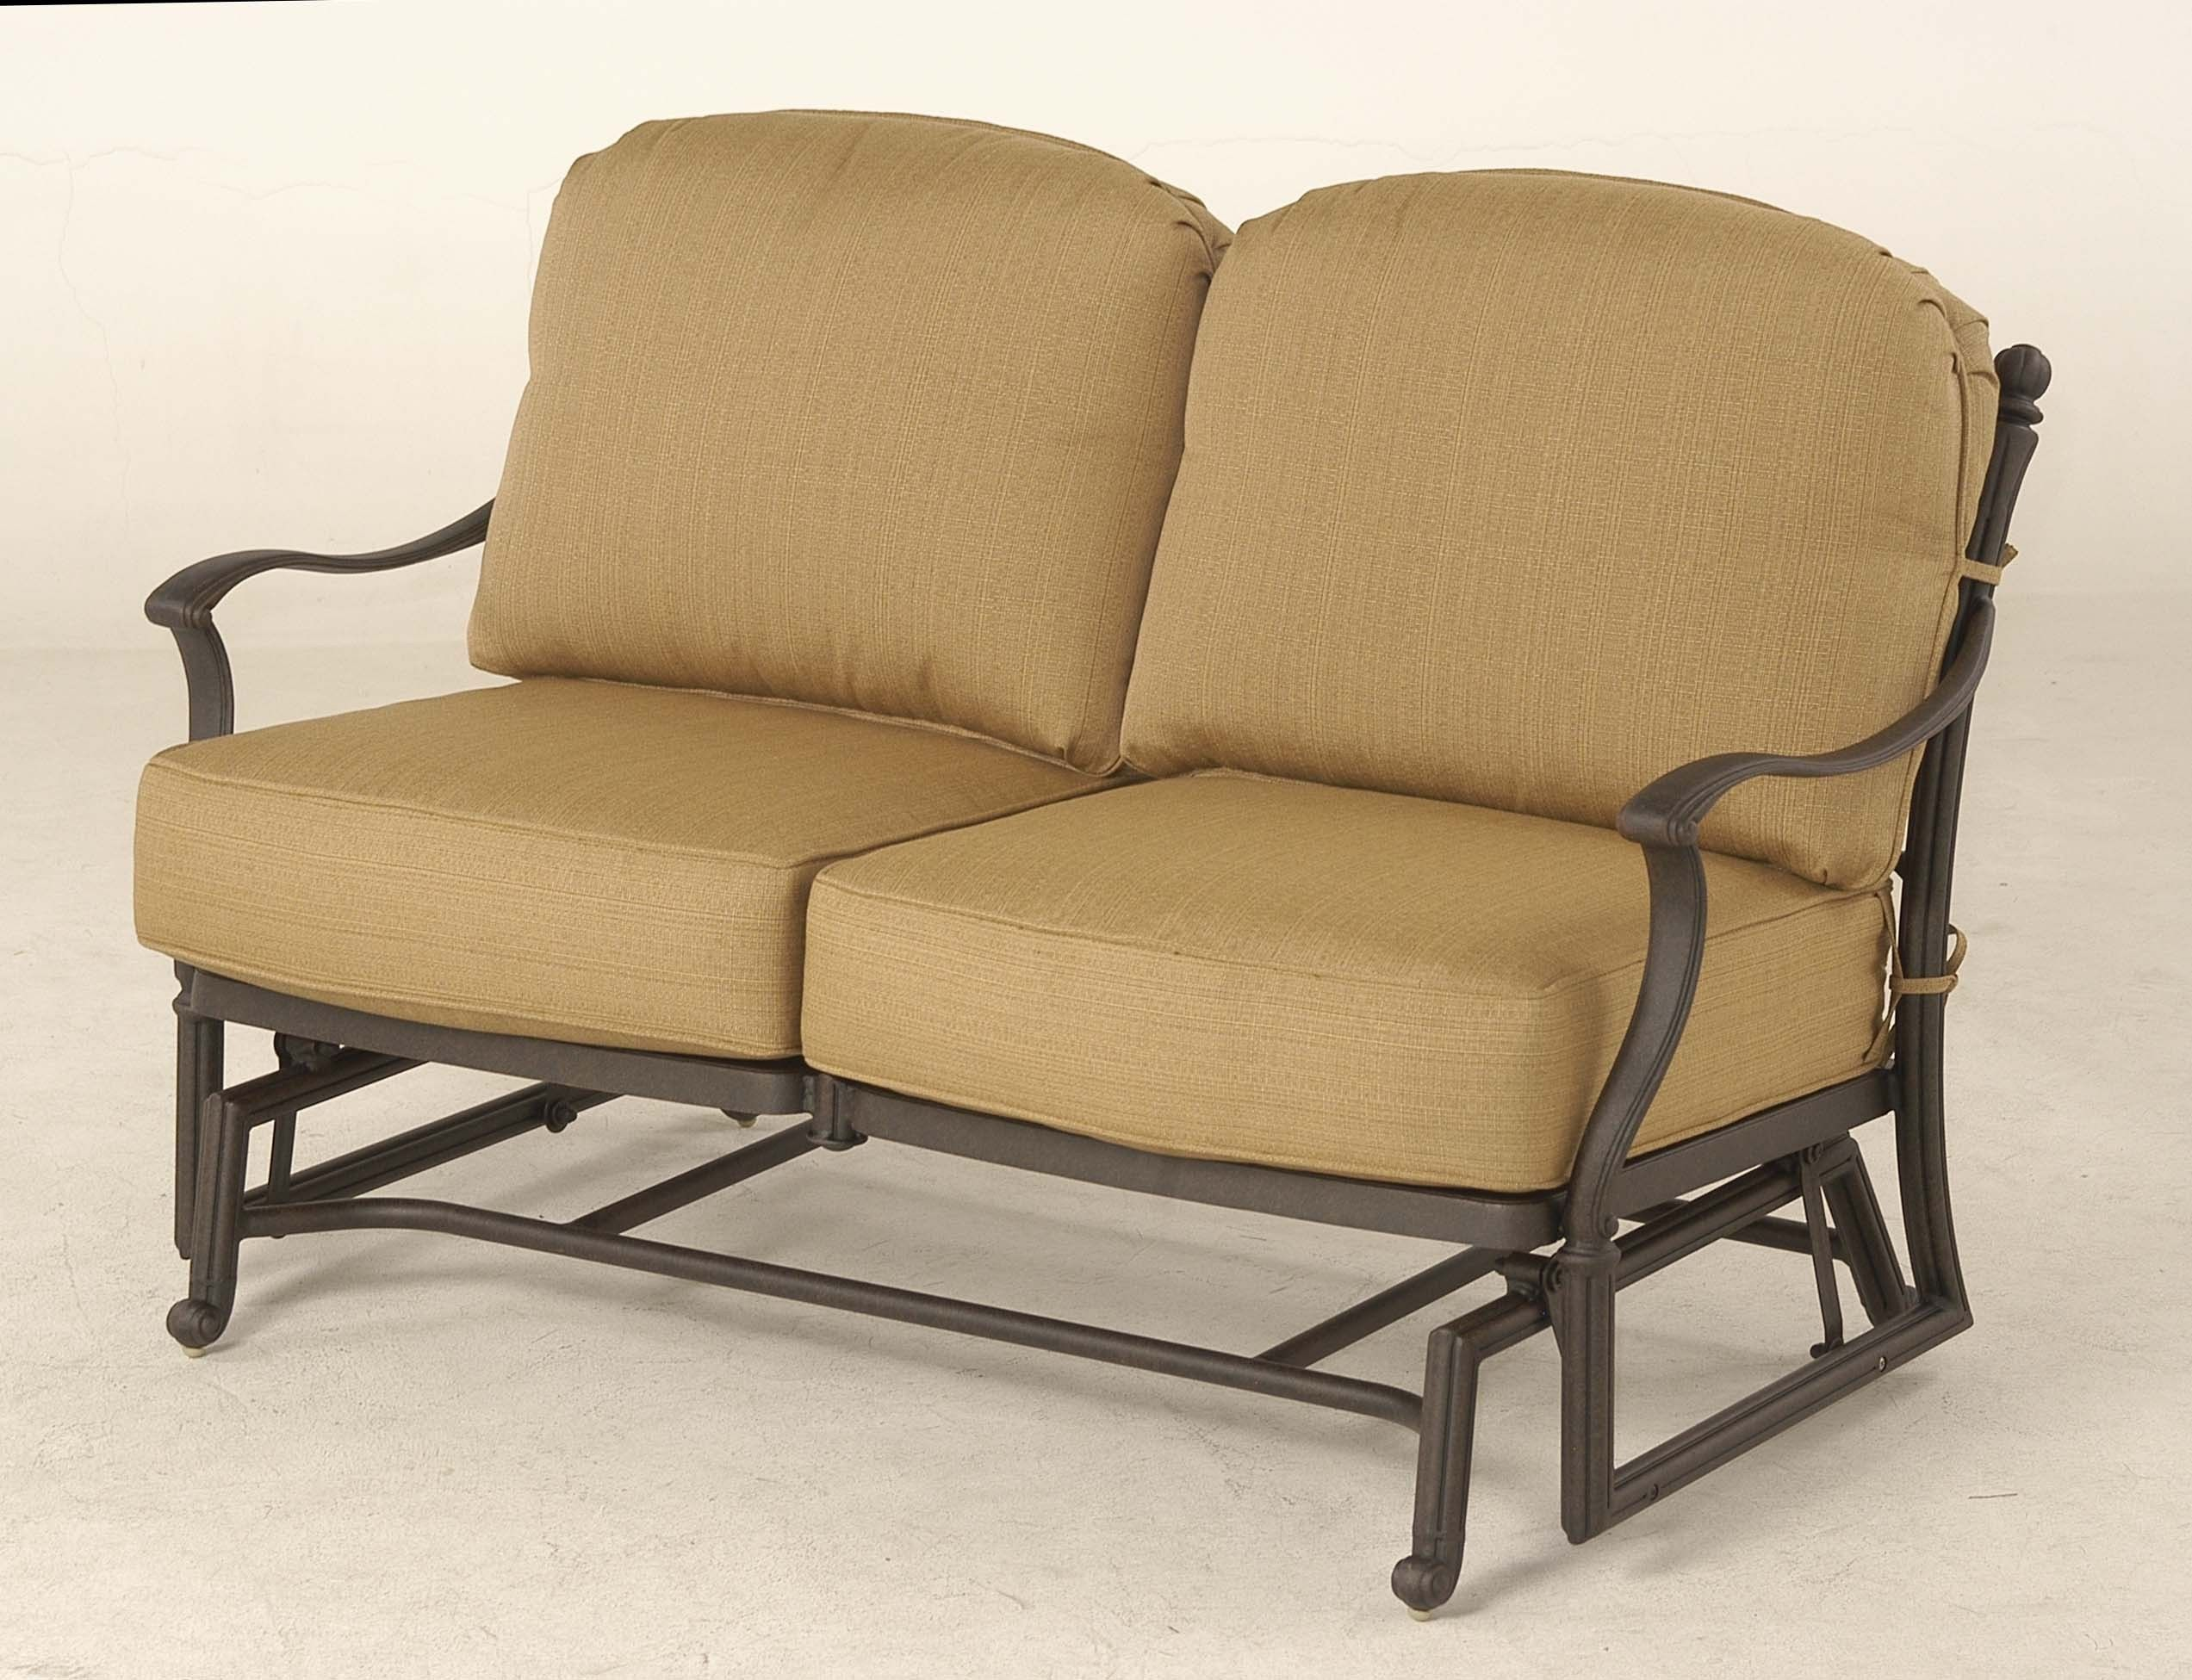 Great Turin Collection Patio Loveseat Glider By Hanamint